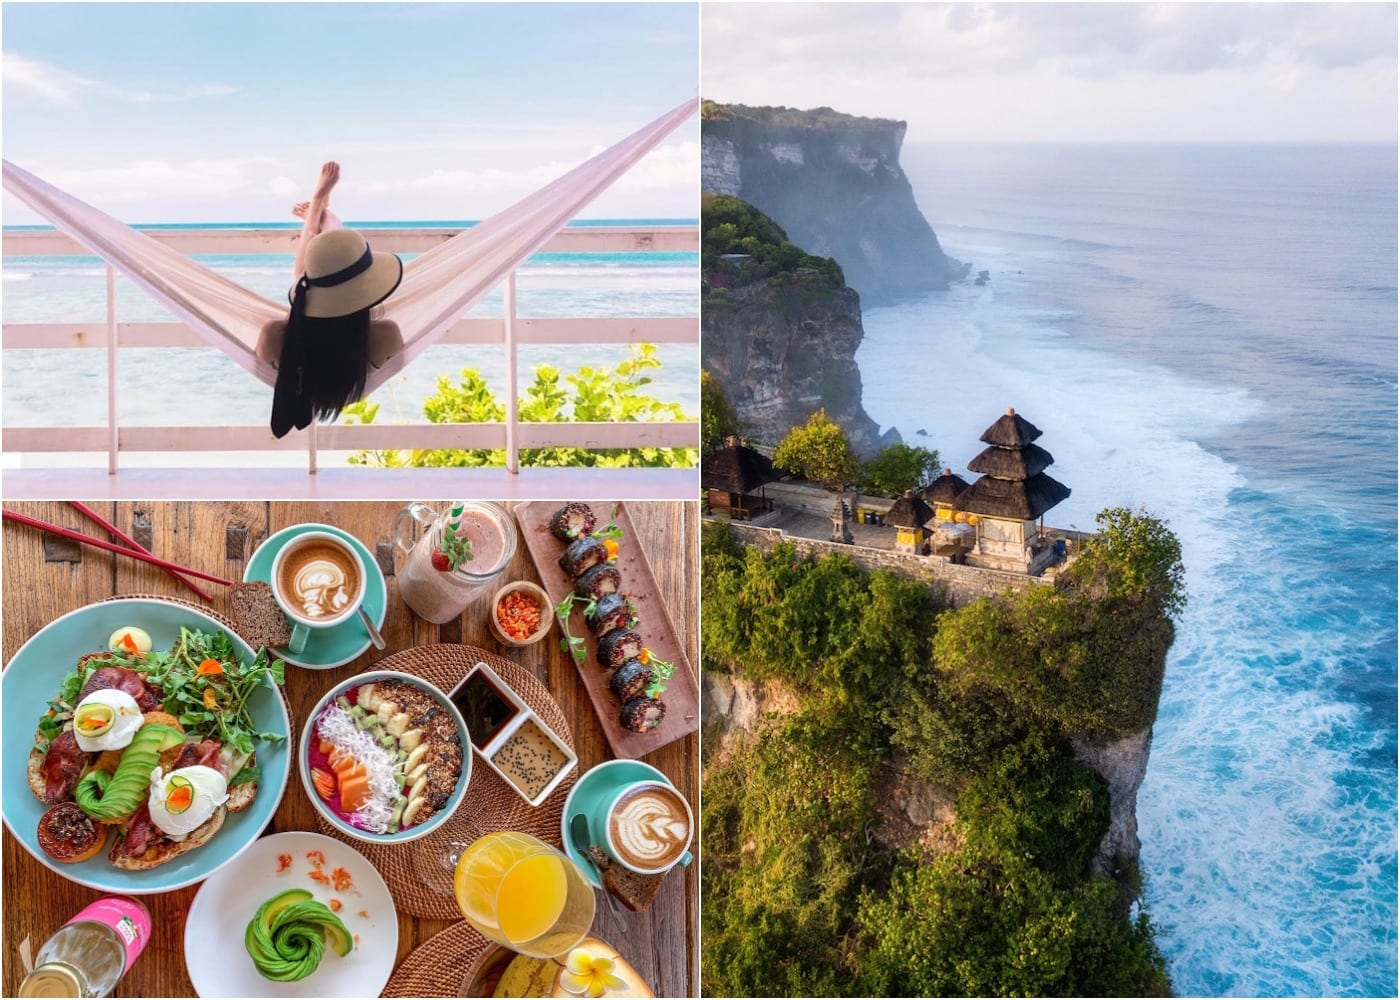 Awesome things to do in The Bukit - from Uluwatu and Bingin to Balangan & beyond